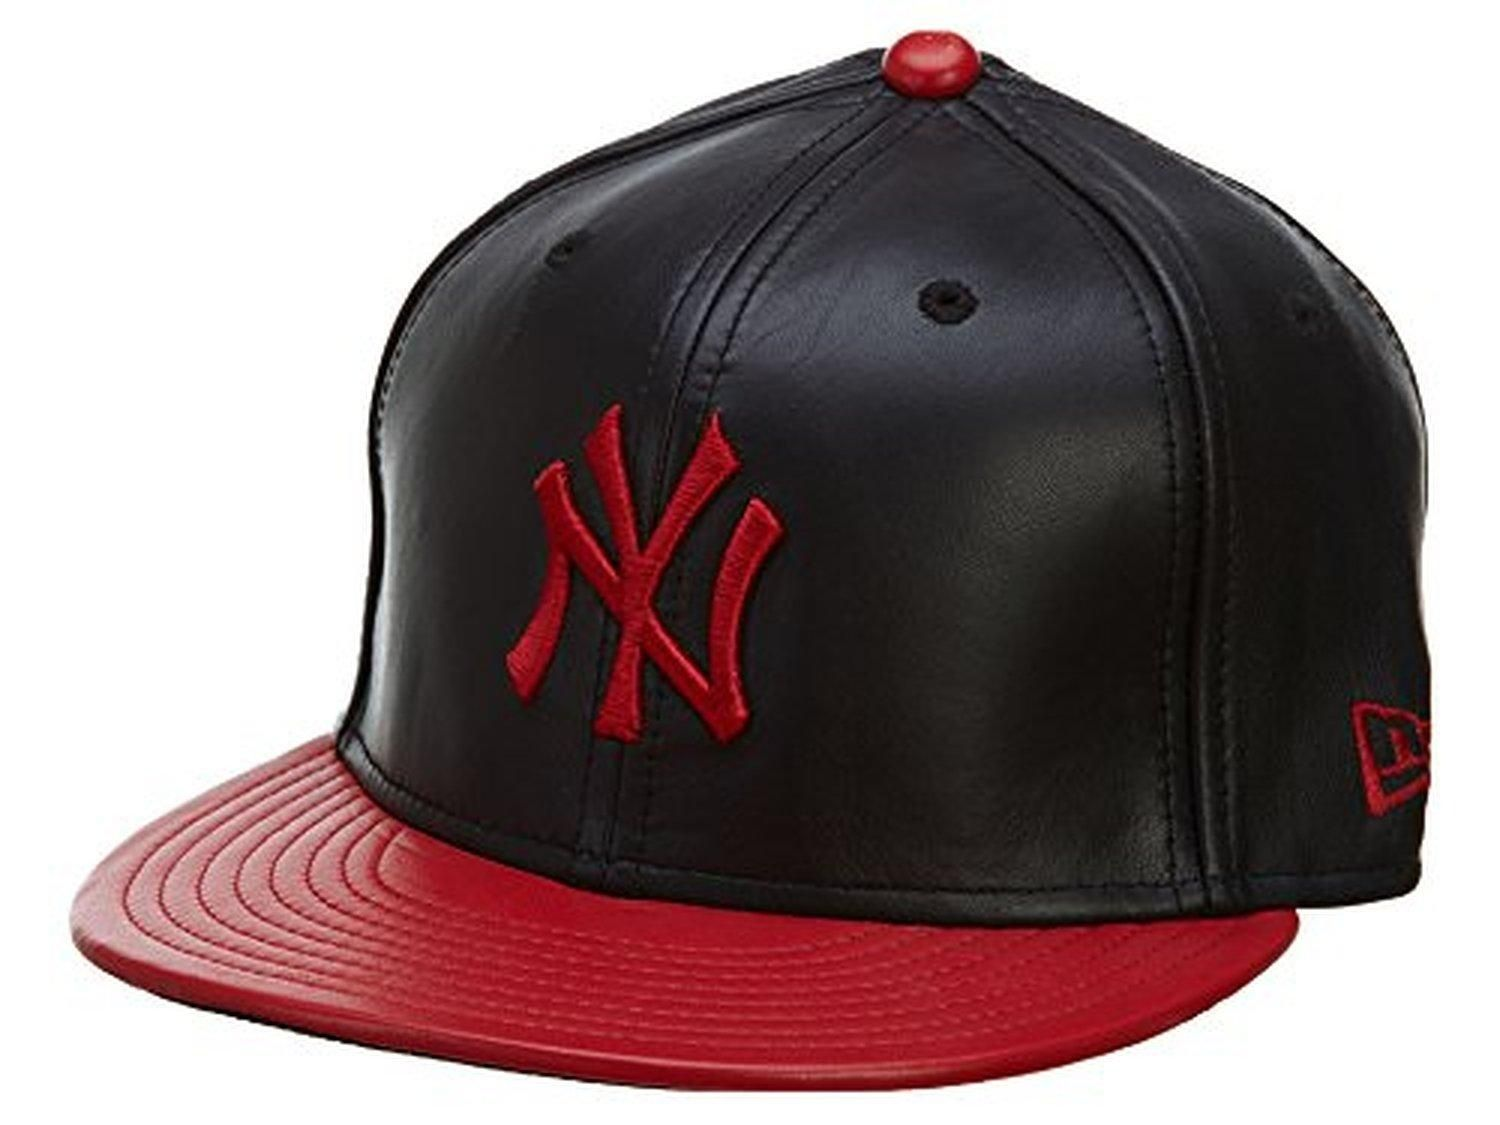 7ce6e1bd06edb New Era New York Yankees MLB Leather 59FIFTY Cap Black Scarlet Size 8 -  Brought to you by Avarsha.com